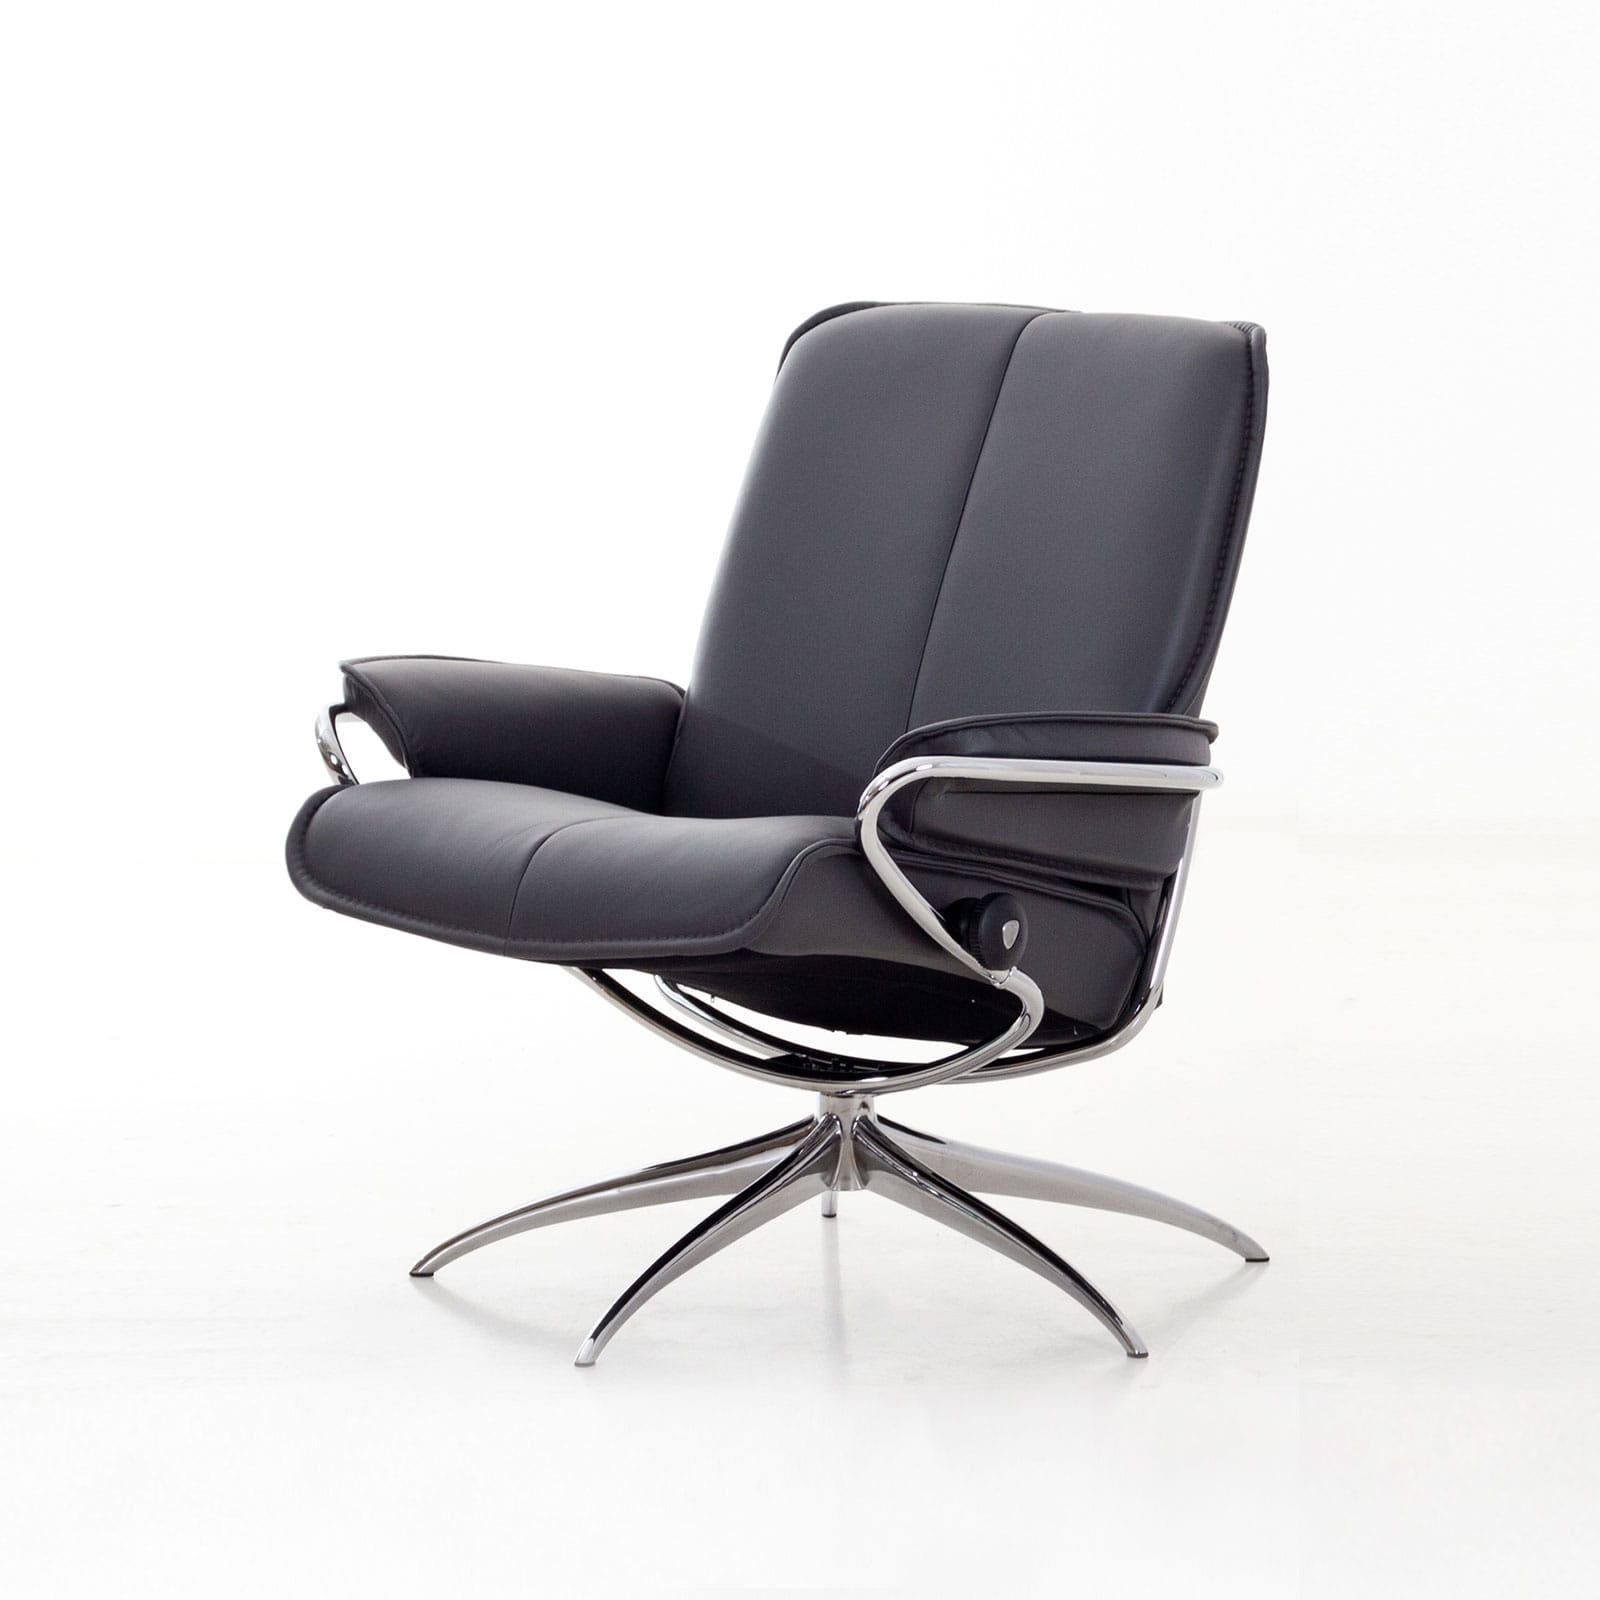 Stressless City Sessel Preis Stressless City Sessel